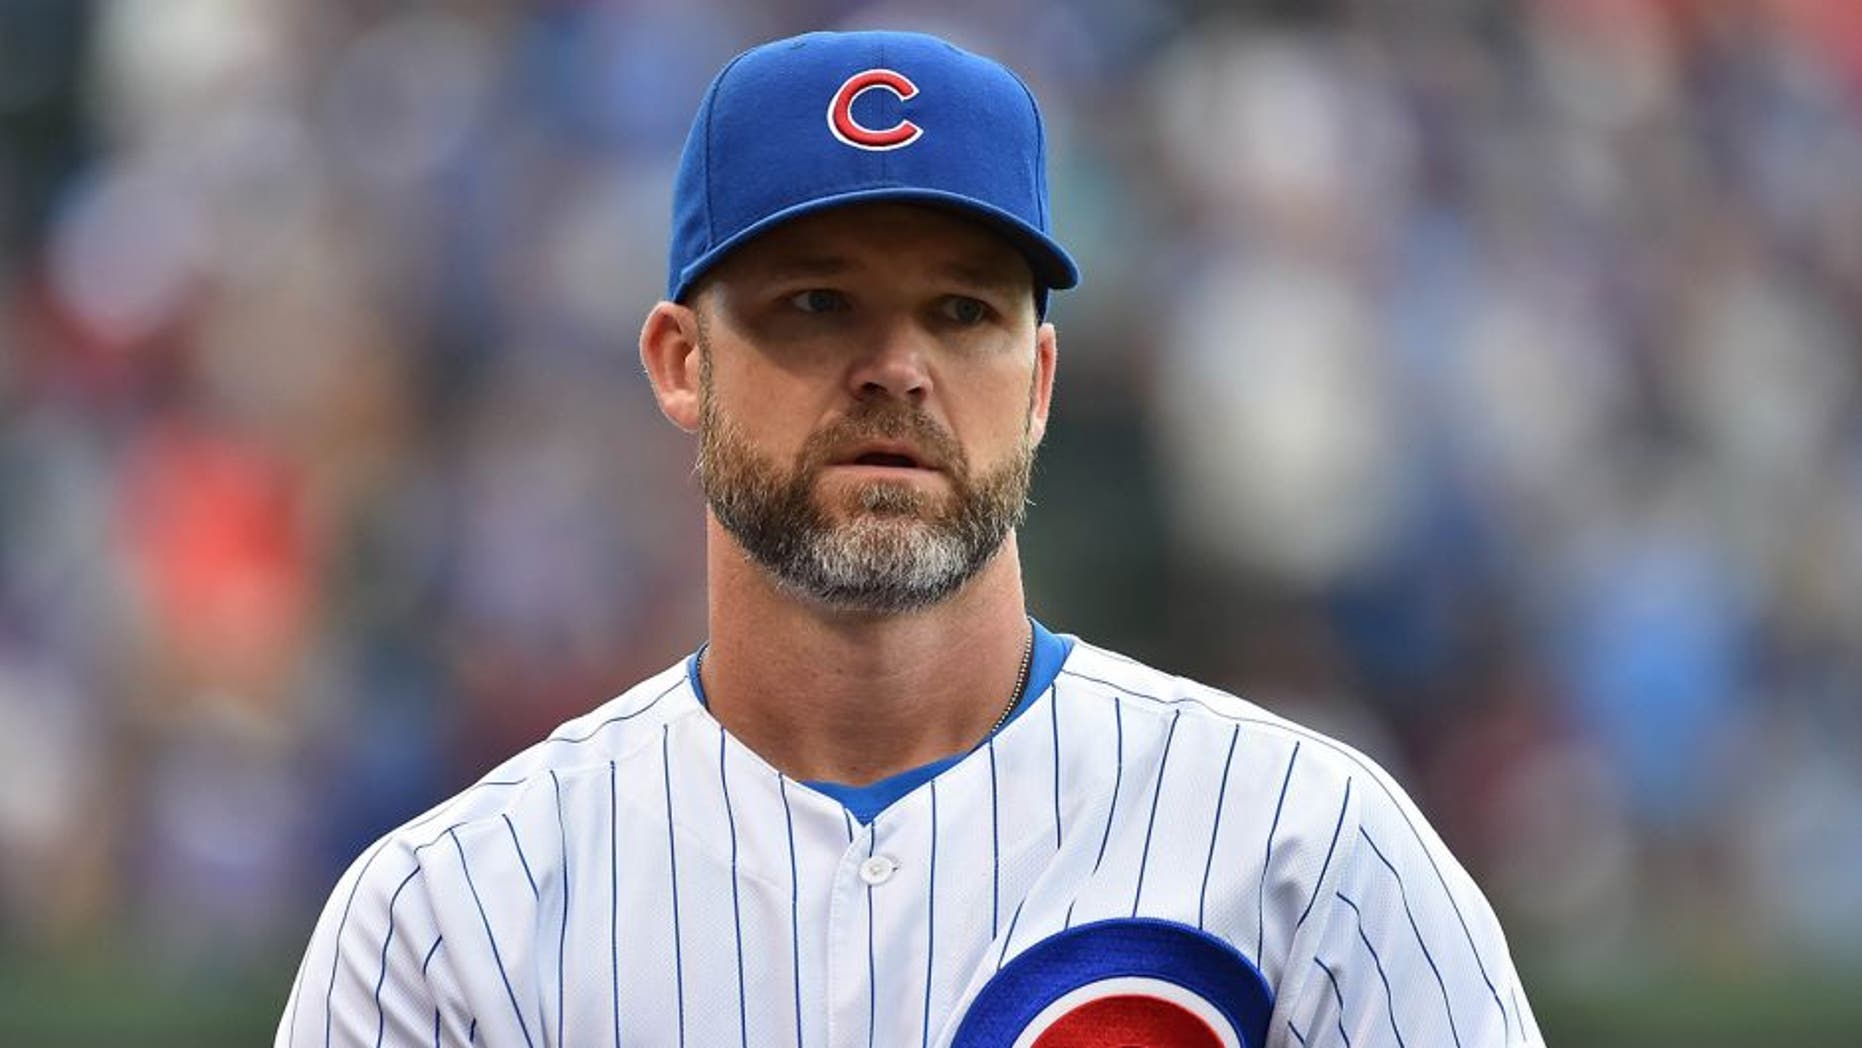 Sep 19, 2015; Chicago, IL, USA; Chicago Cubs catcher David Ross (3) before the game between the Chicago Cubs and the St. Louis Cardinals at Wrigley Field. Mandatory Credit: Jasen Vinlove-USA TODAY Sports